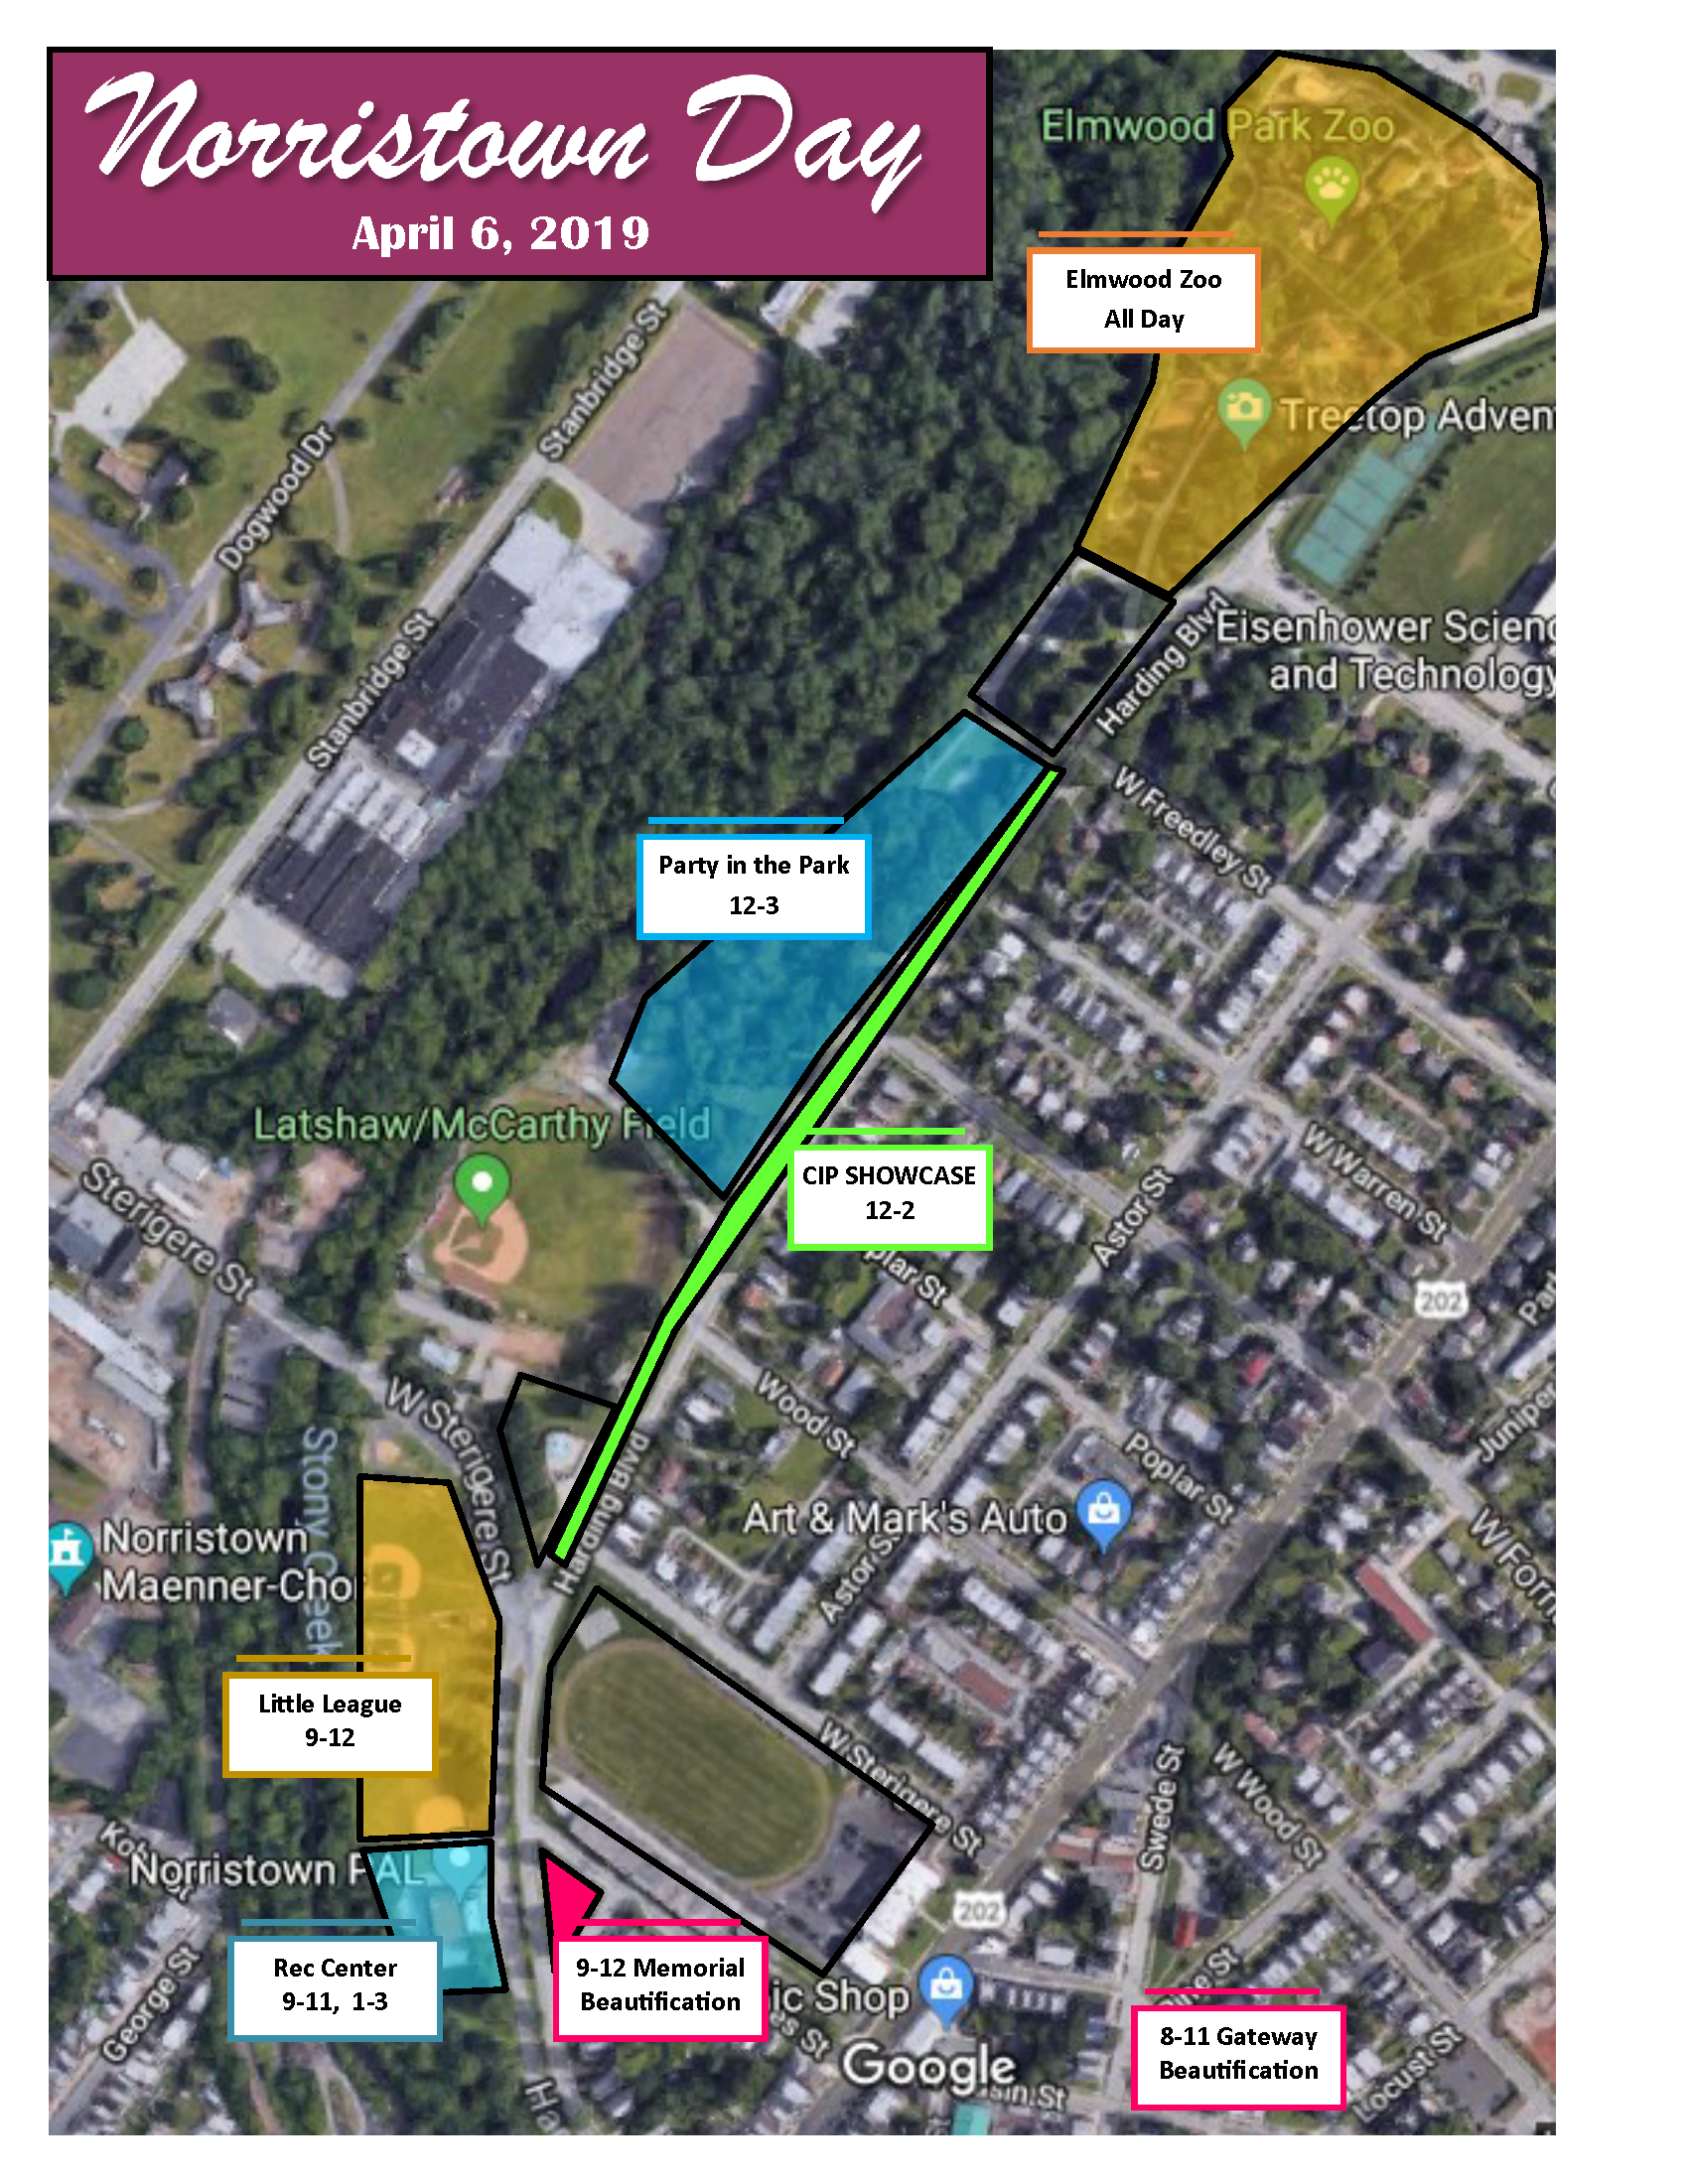 Norristown Day Map